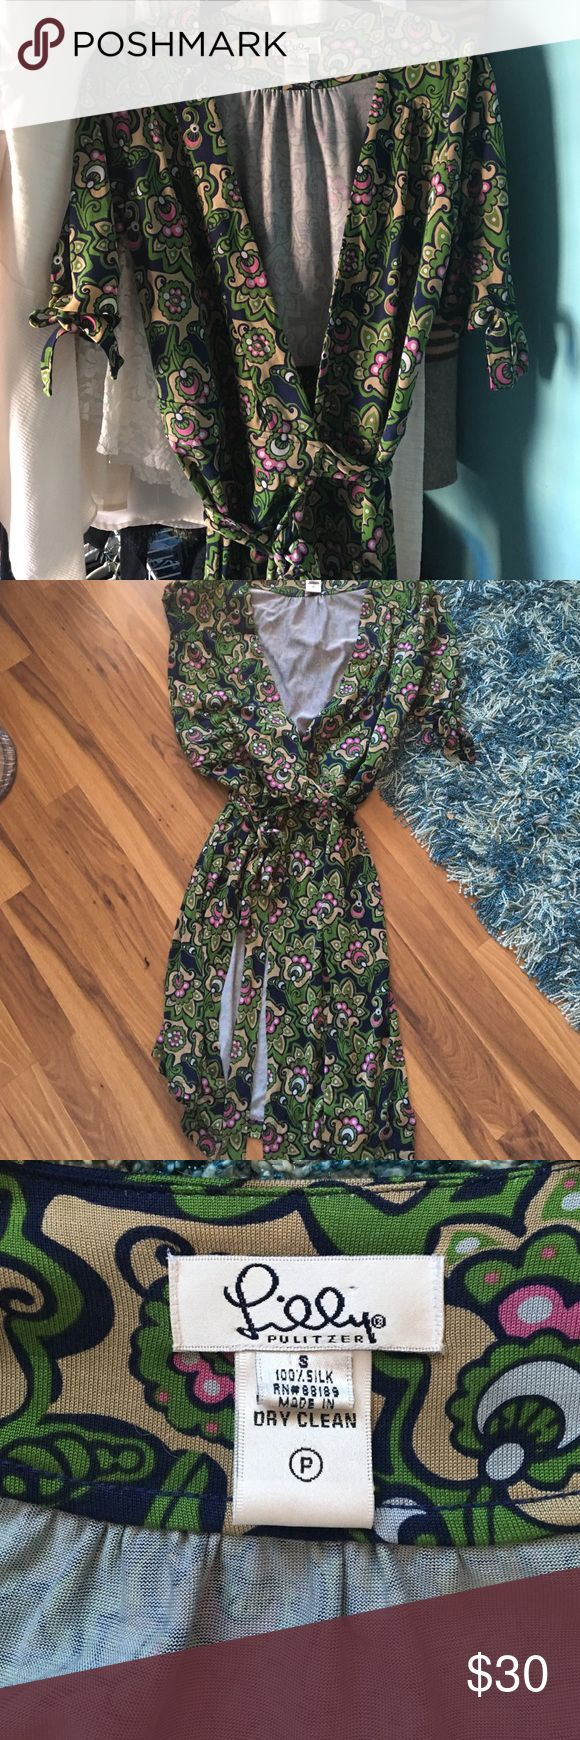 Lilly Pulitzer petite small wrap dress Gorgeous green, navy, pink & light brown wrap dress. The wrap style is so flattering & forgiving. It is in EUC. Short sleeves with little bows on the sleeves. Petite small, Lilly. Lilly Pulitzer Dresses Midi